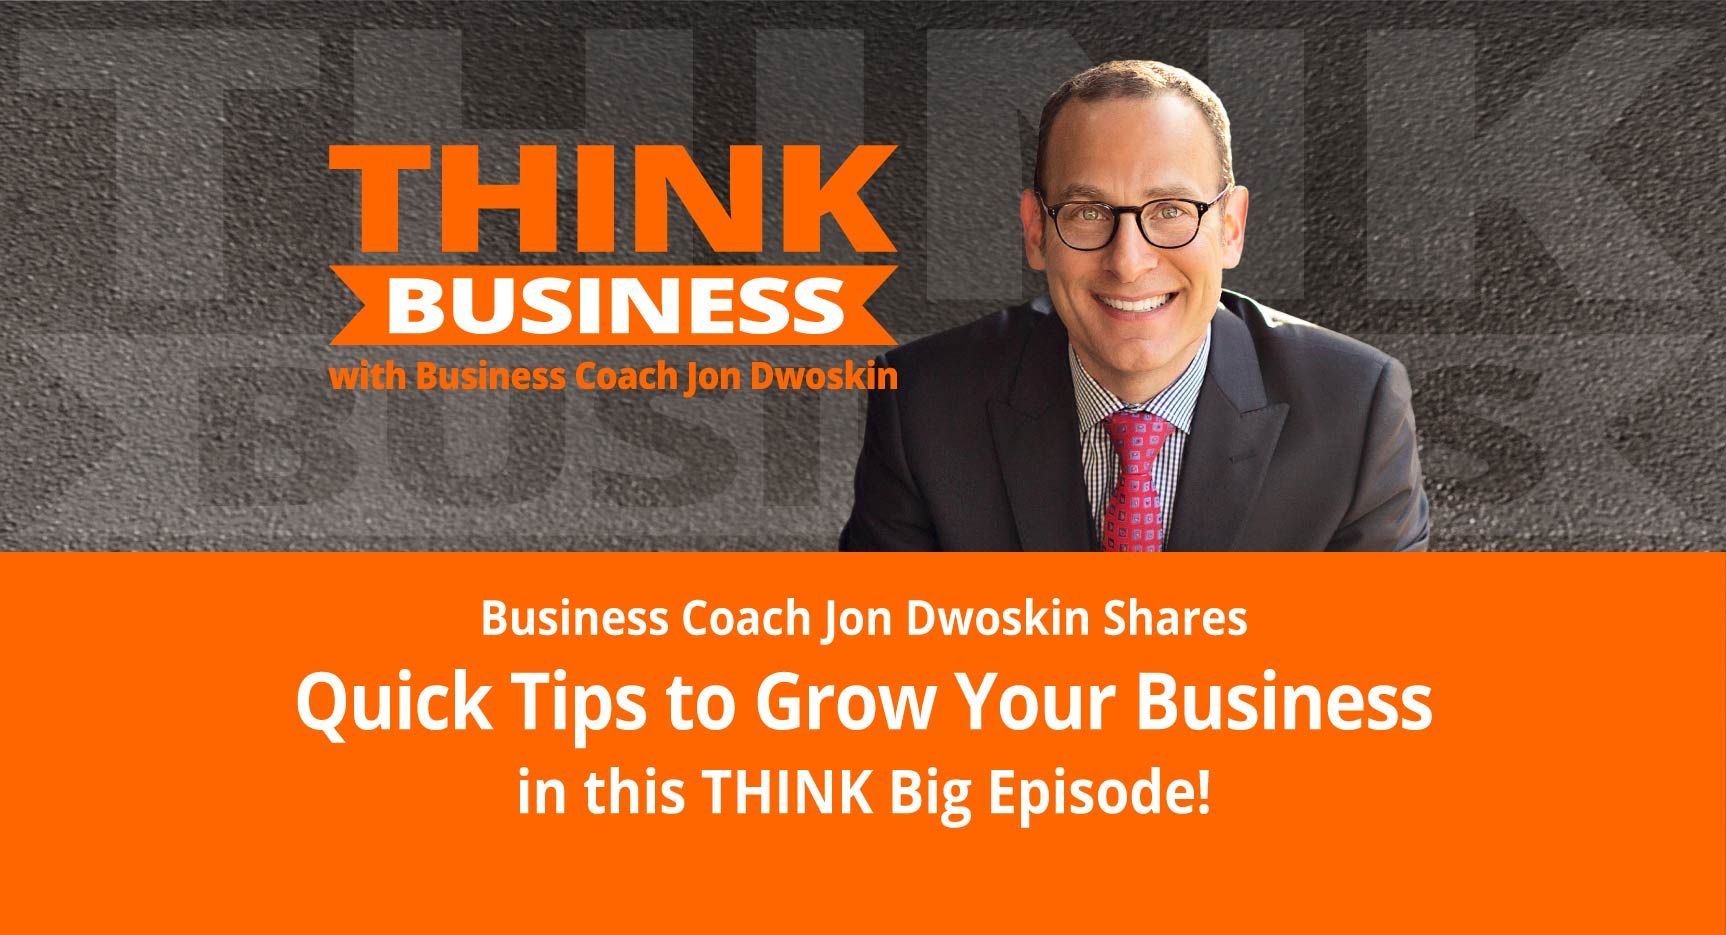 THINK Business Podcast: Manage Your Internal and External Brand